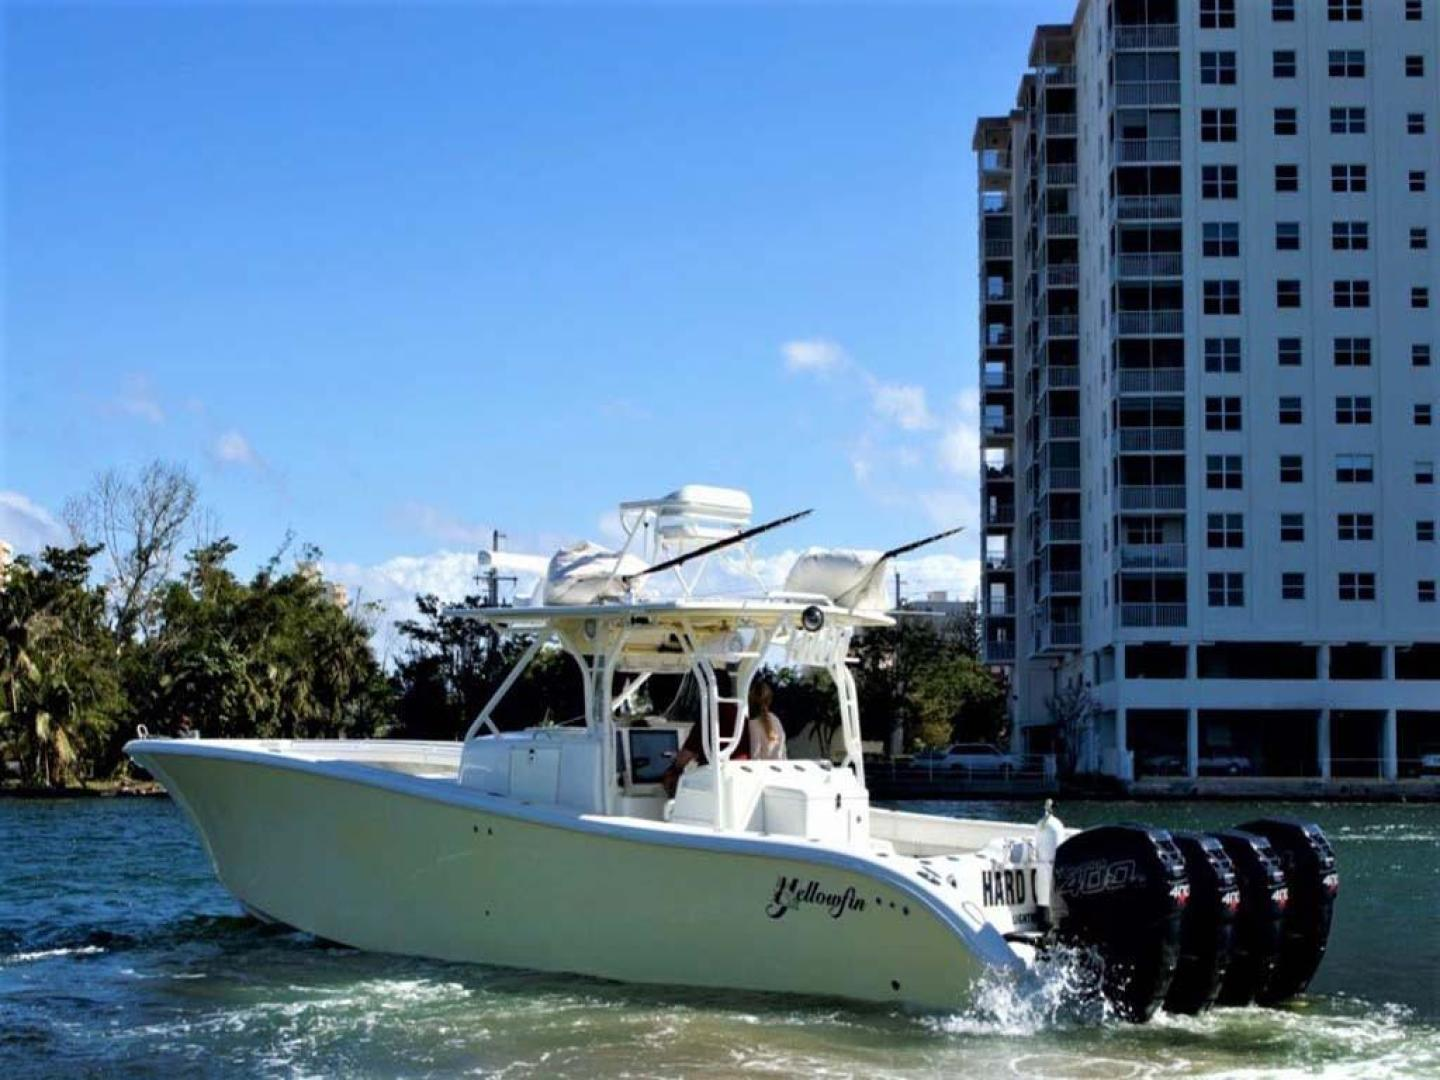 Yellowfin-42-Open-2009-Hard-Charger-Pompano-Florida-United-States-Port-929744